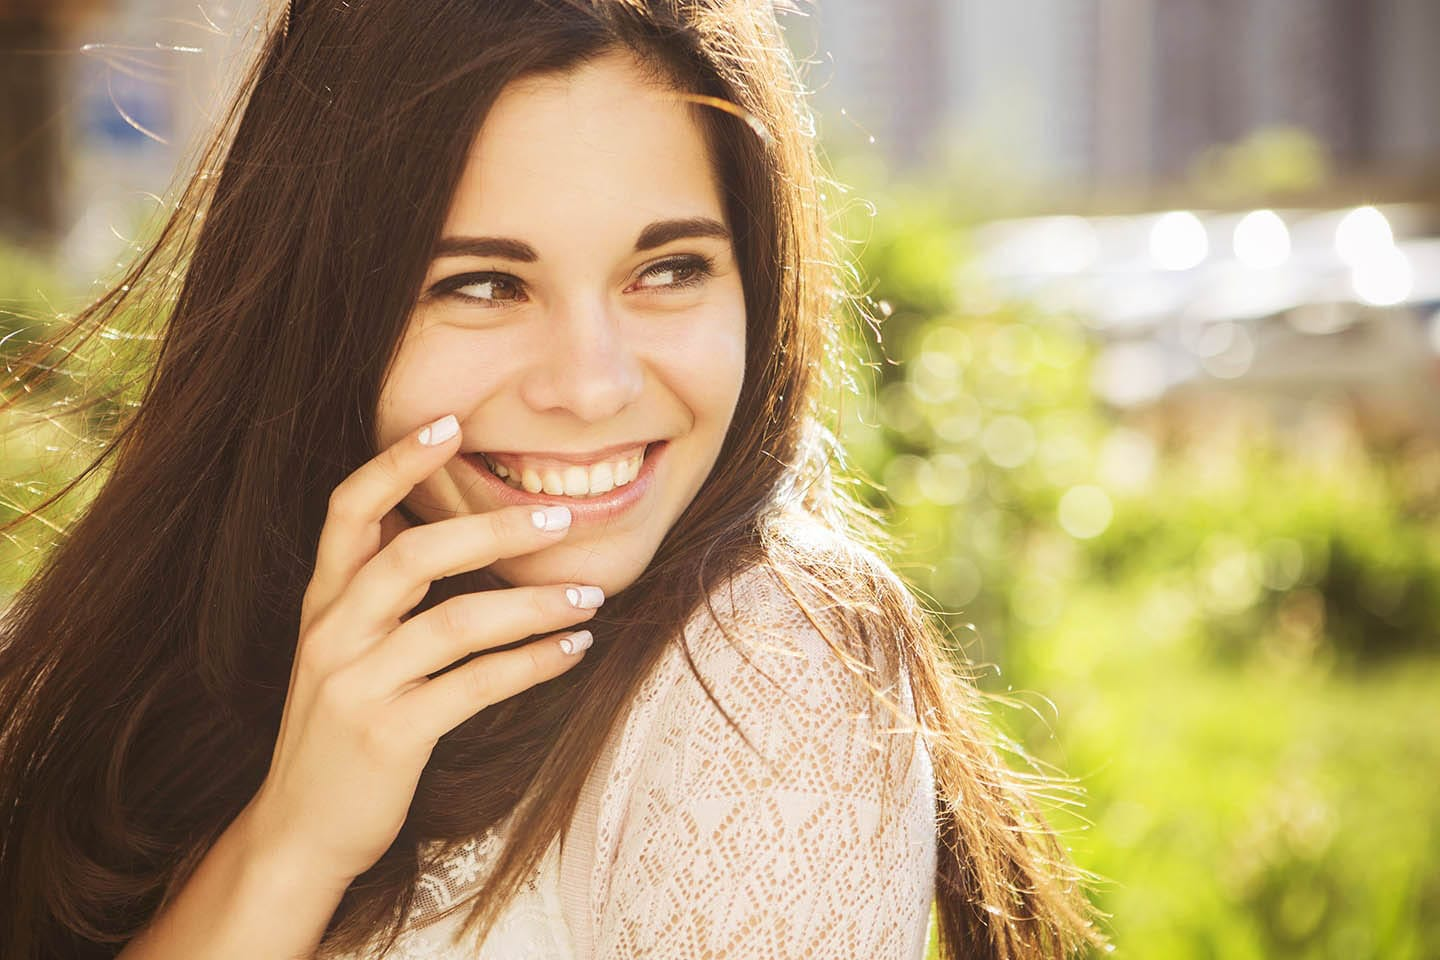 Girl smiling after teeth whitening treatment